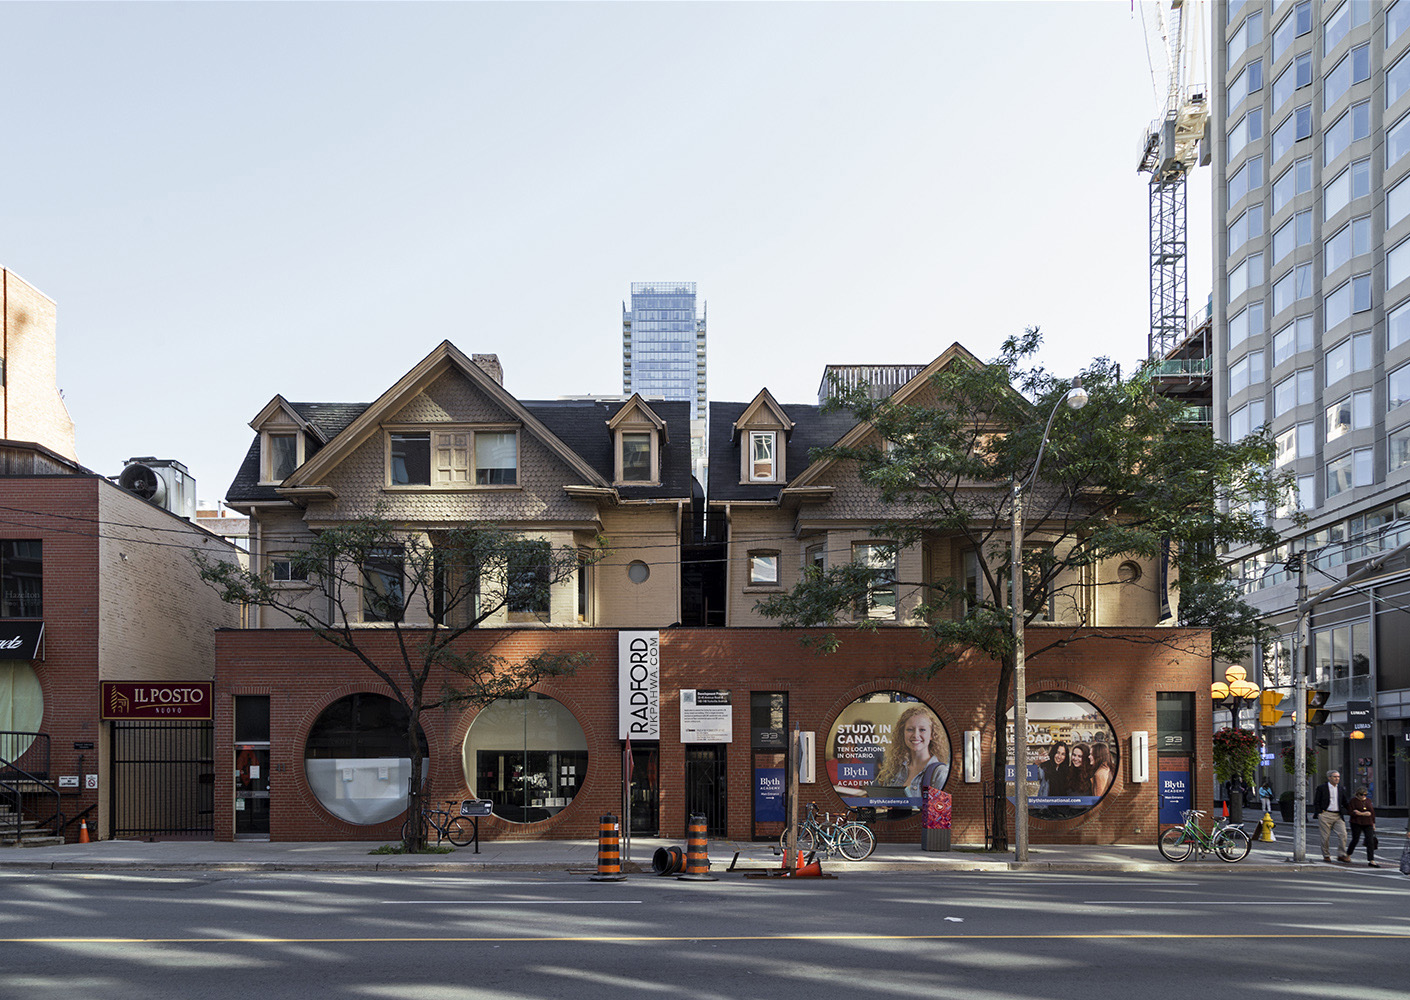 20170320. 1880s Victorian houses modeled into Yorkville's York S